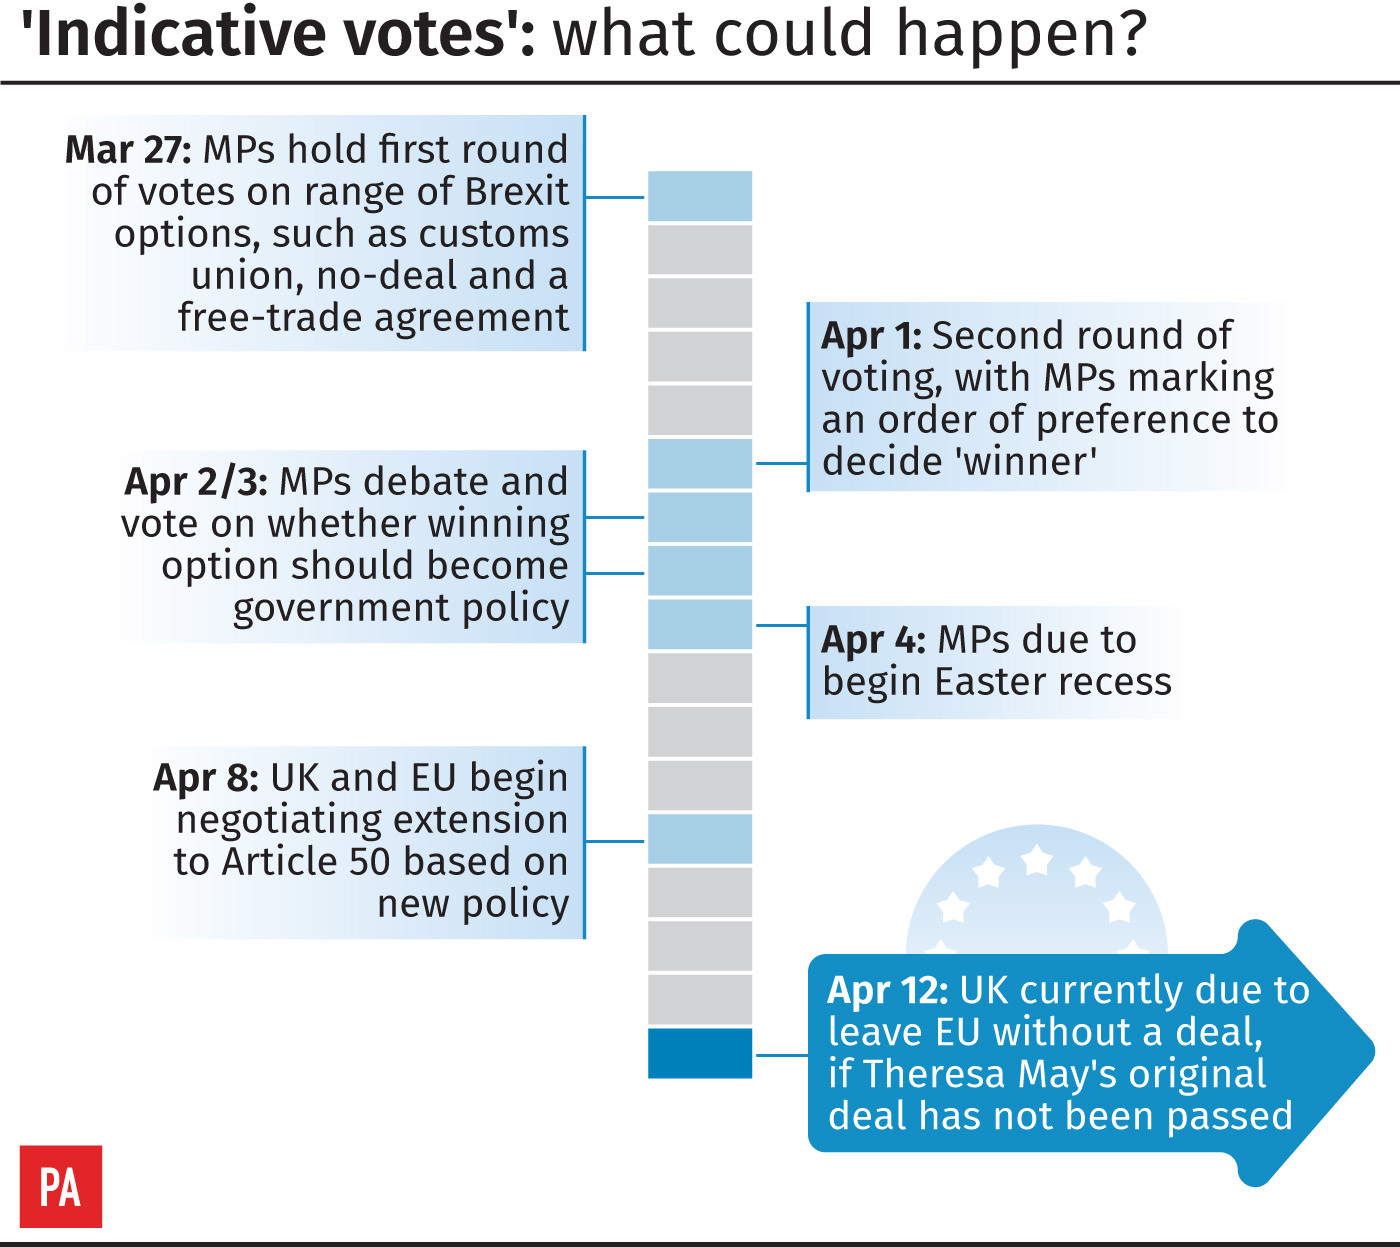 'Indicative votes': what could happen?